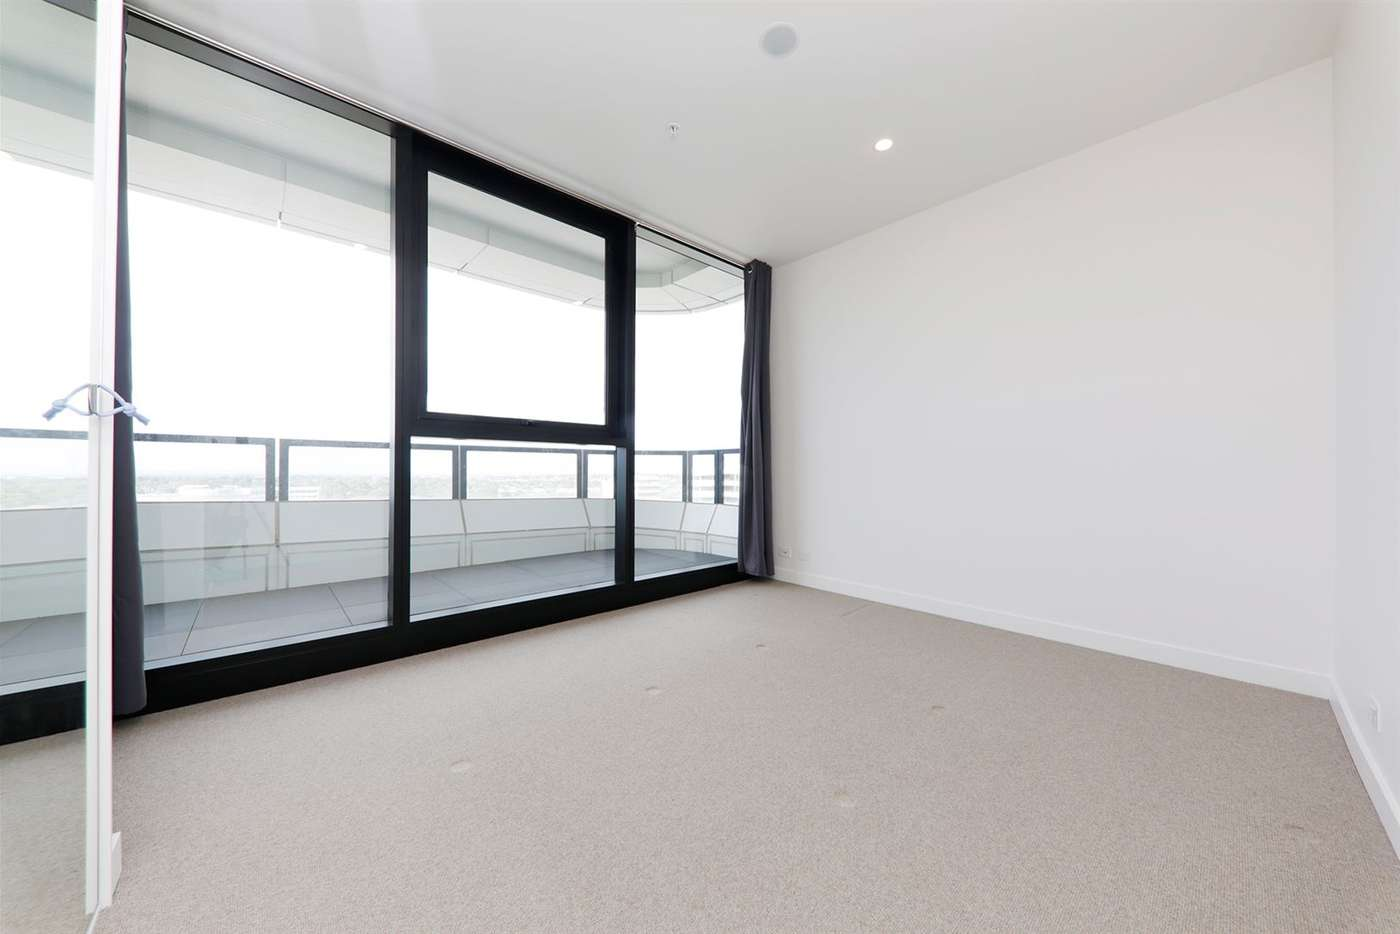 Seventh view of Homely apartment listing, 1014/52 O'sullivan Road, Glen Waverley VIC 3150